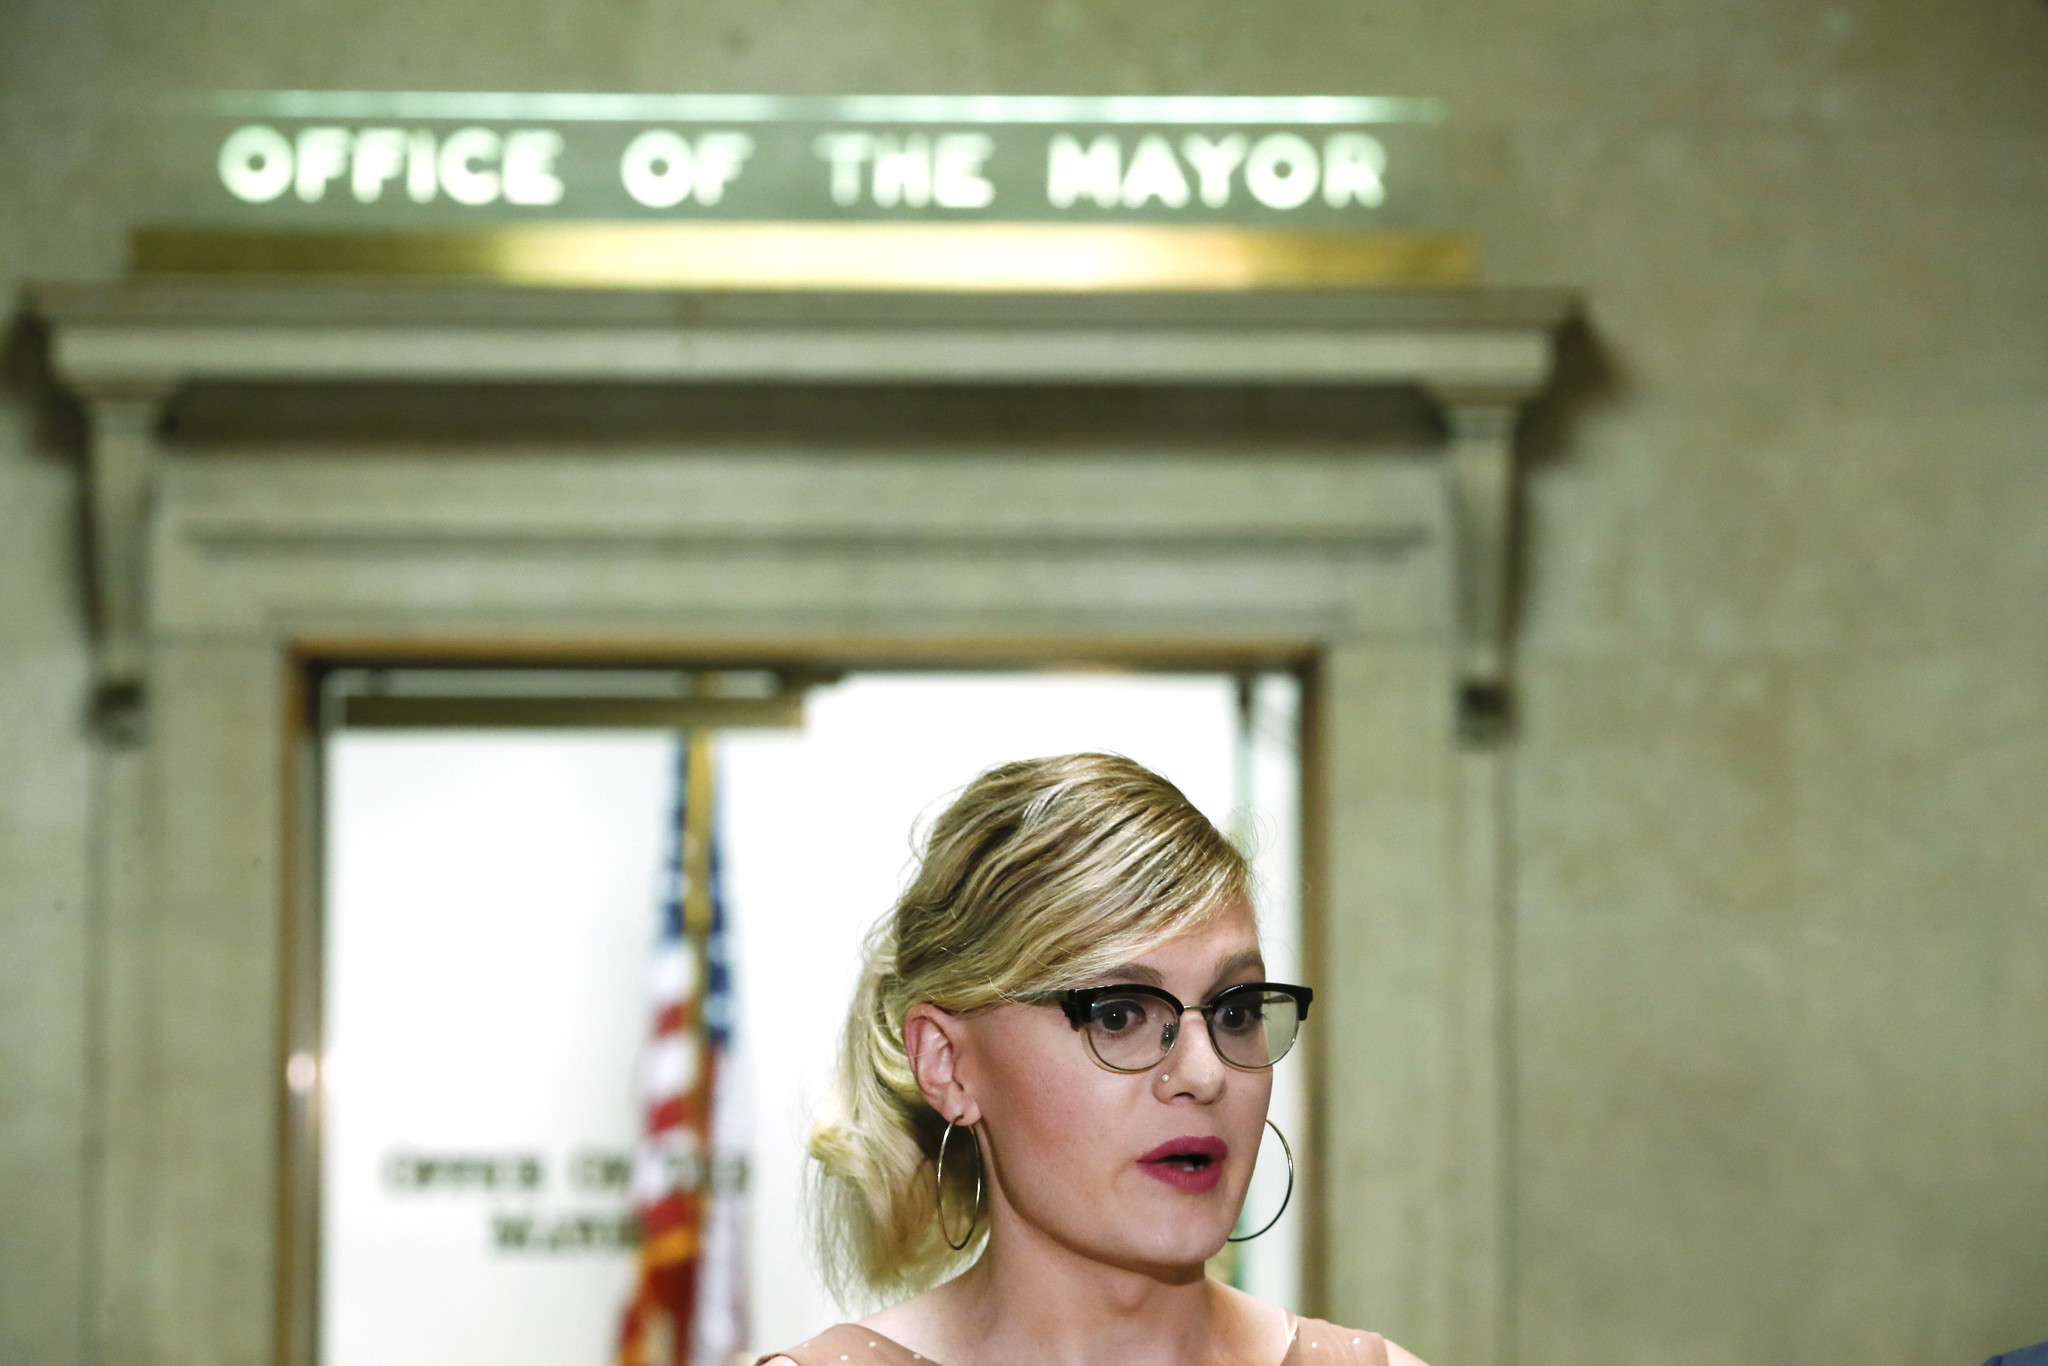 a transgender woman is challenging chicago's definition of the